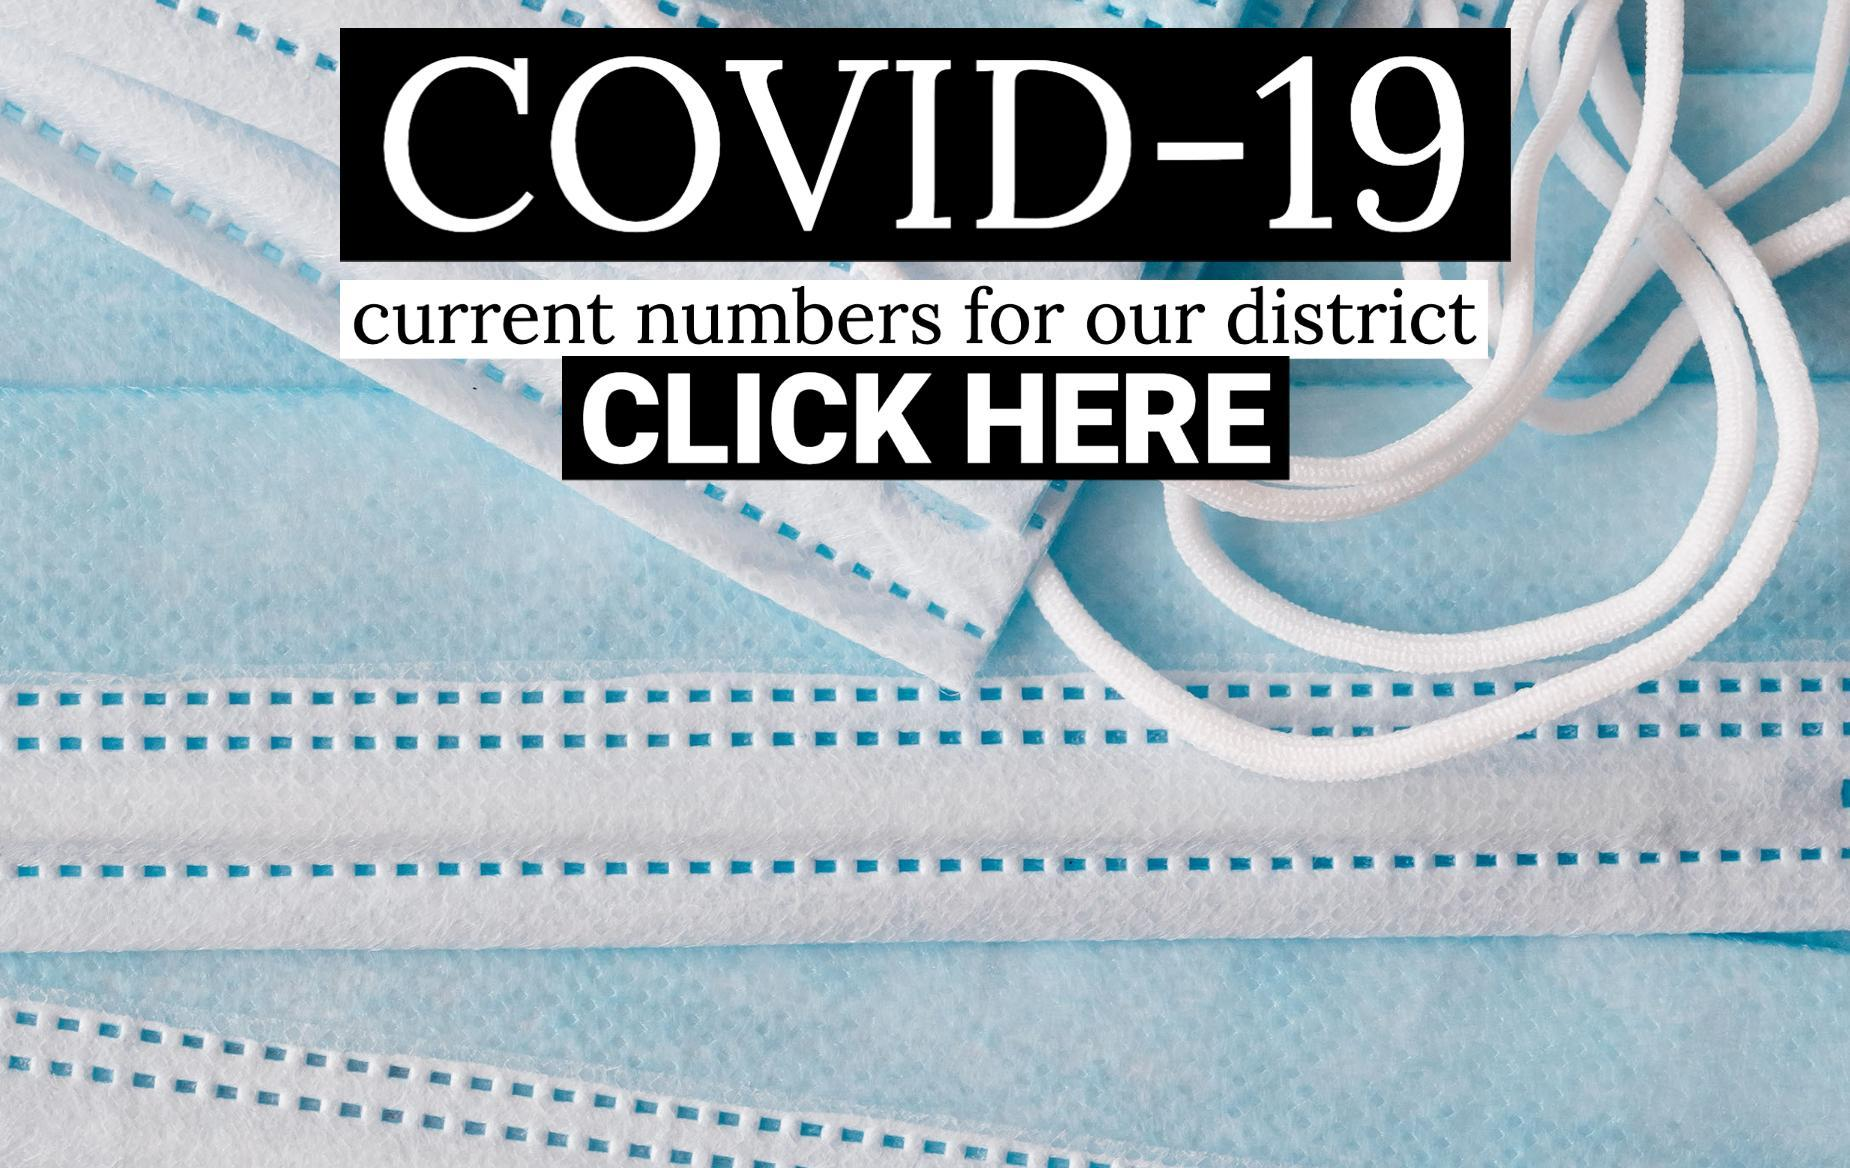 COVID 19 numbers for our district